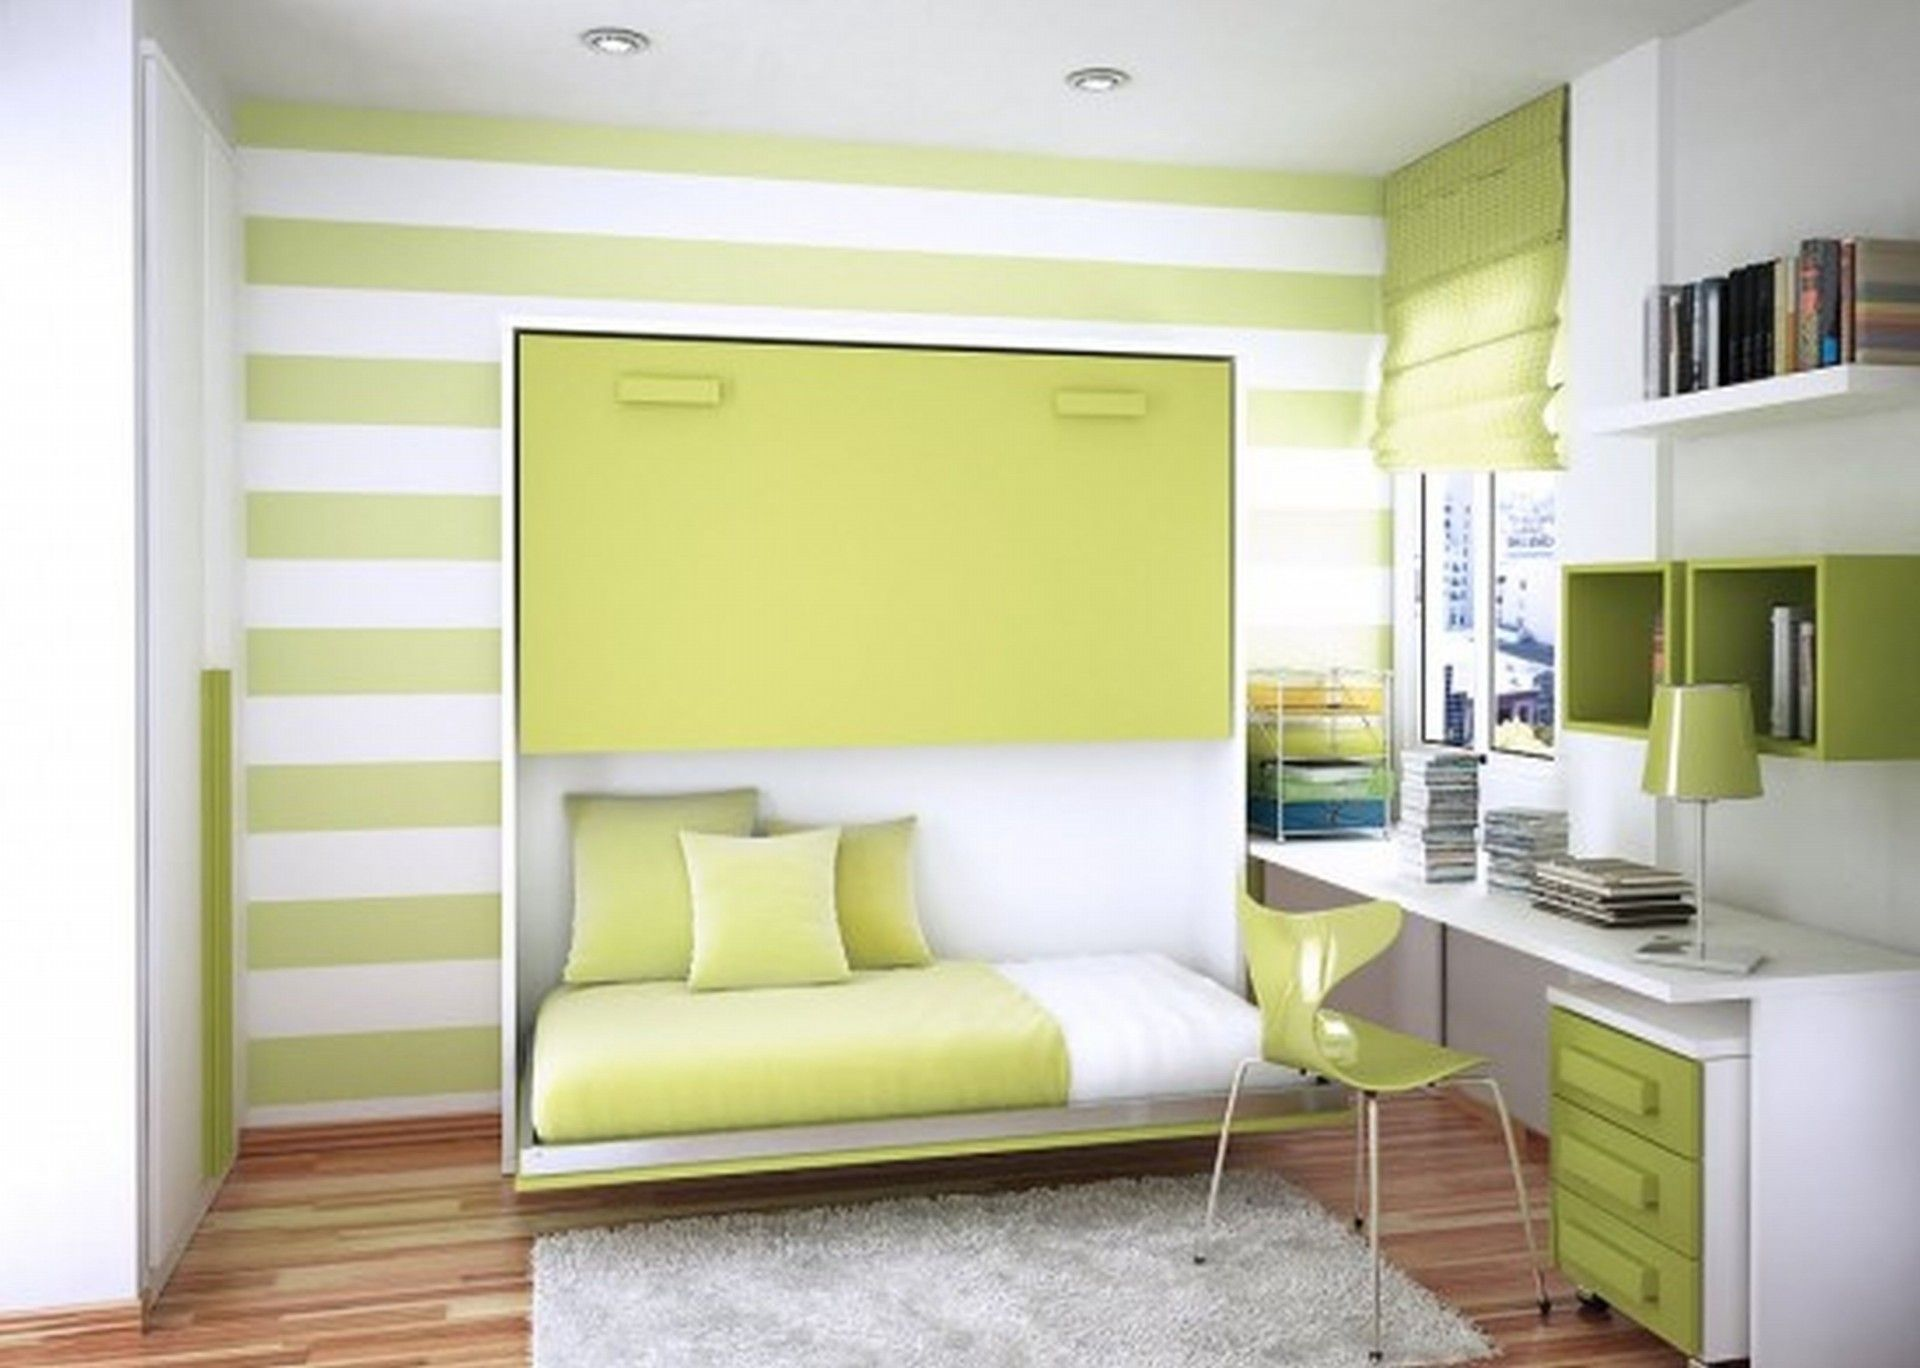 Modern Boys Bedroom Design With Awesome Folding Bed And Cupboard For ...